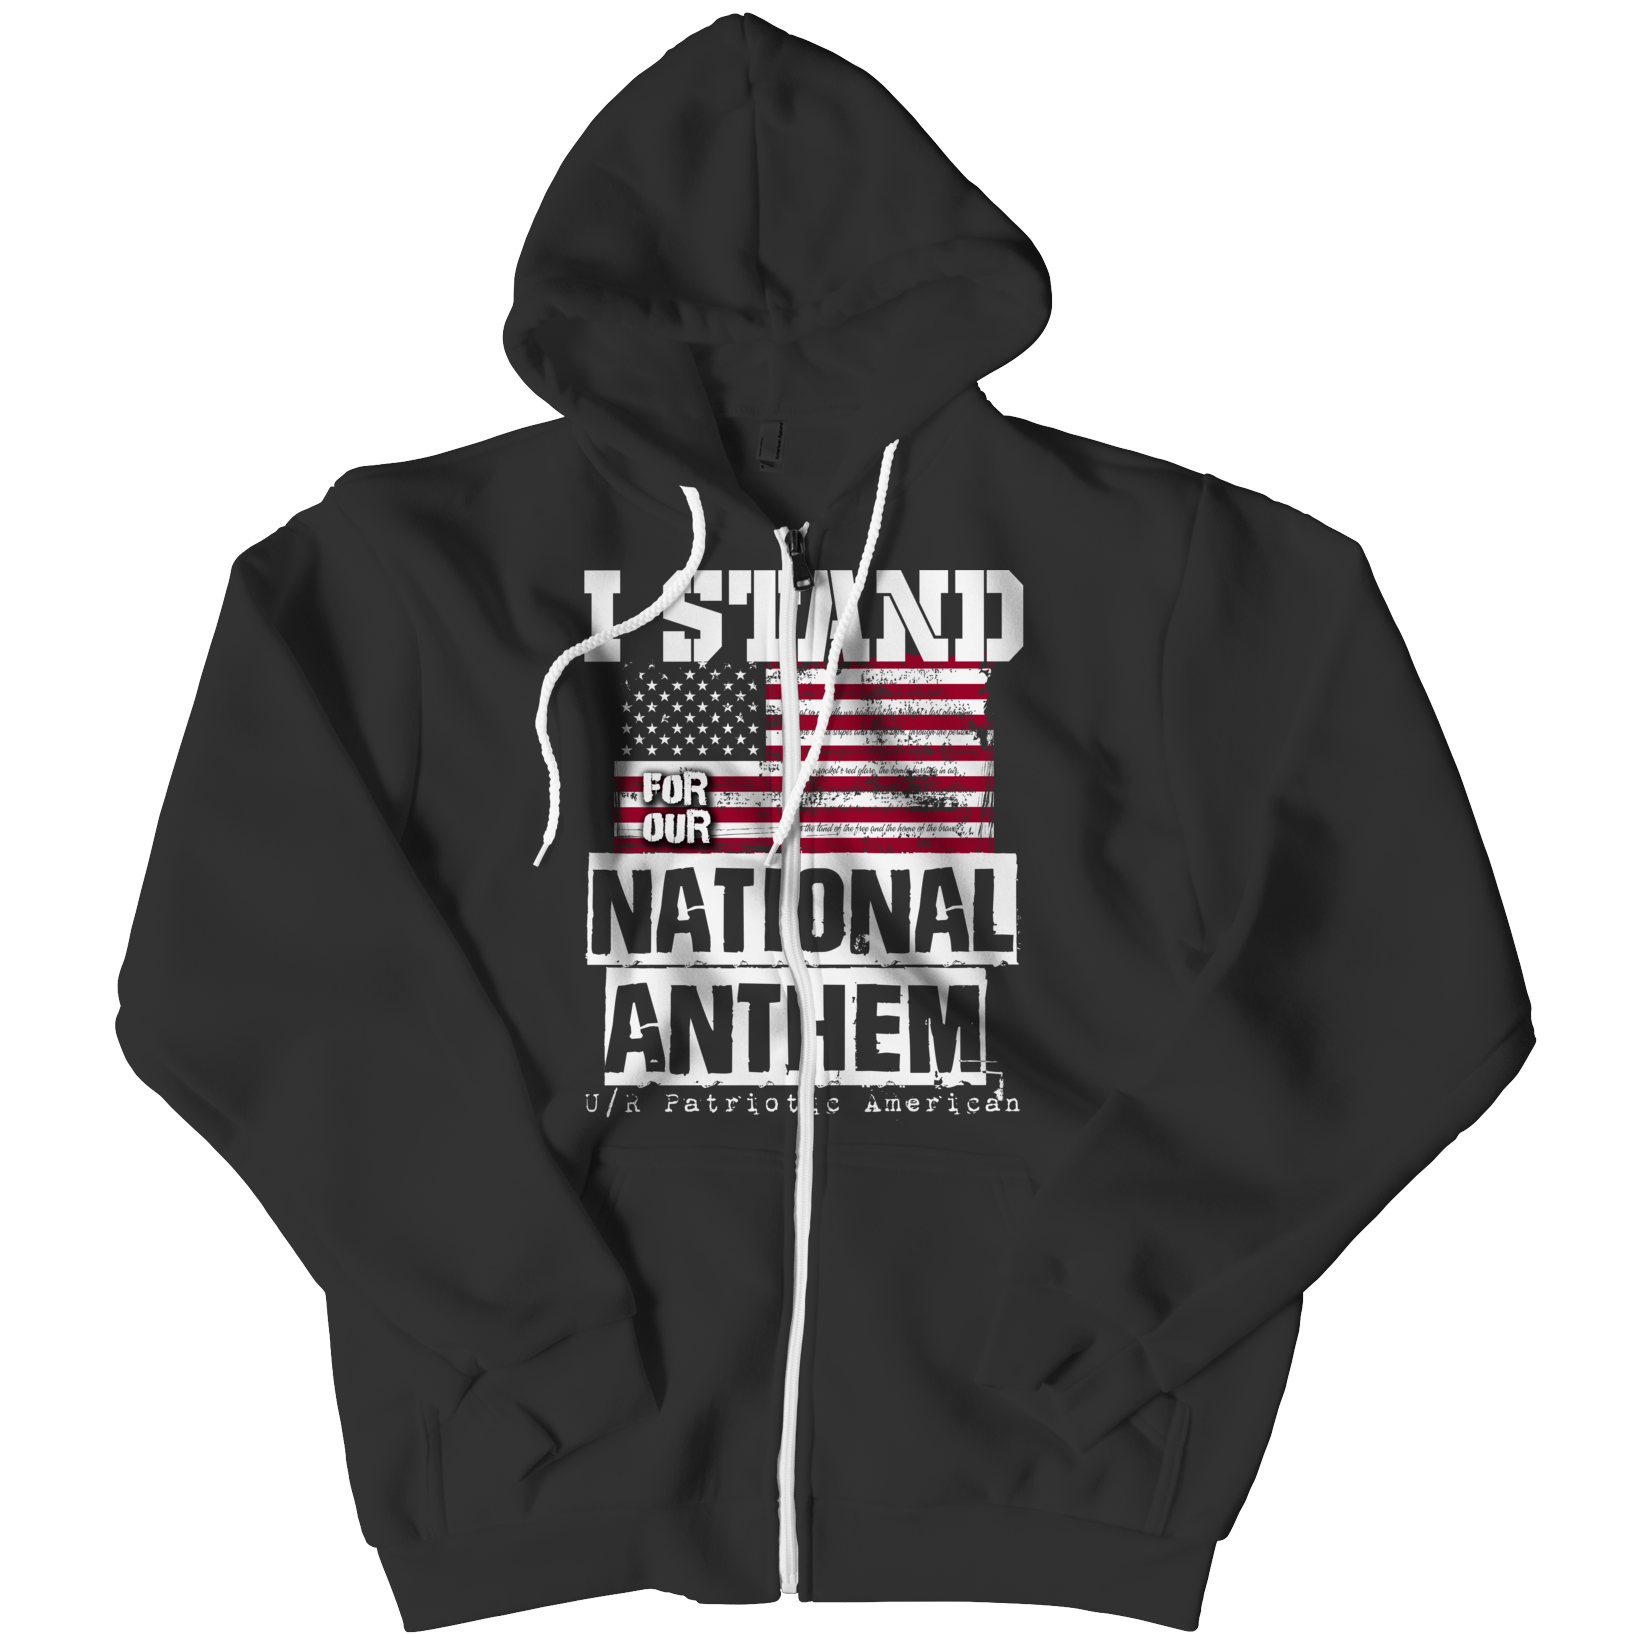 Zipper Hoodie - Limited Edition - I Stand for the National Anthem